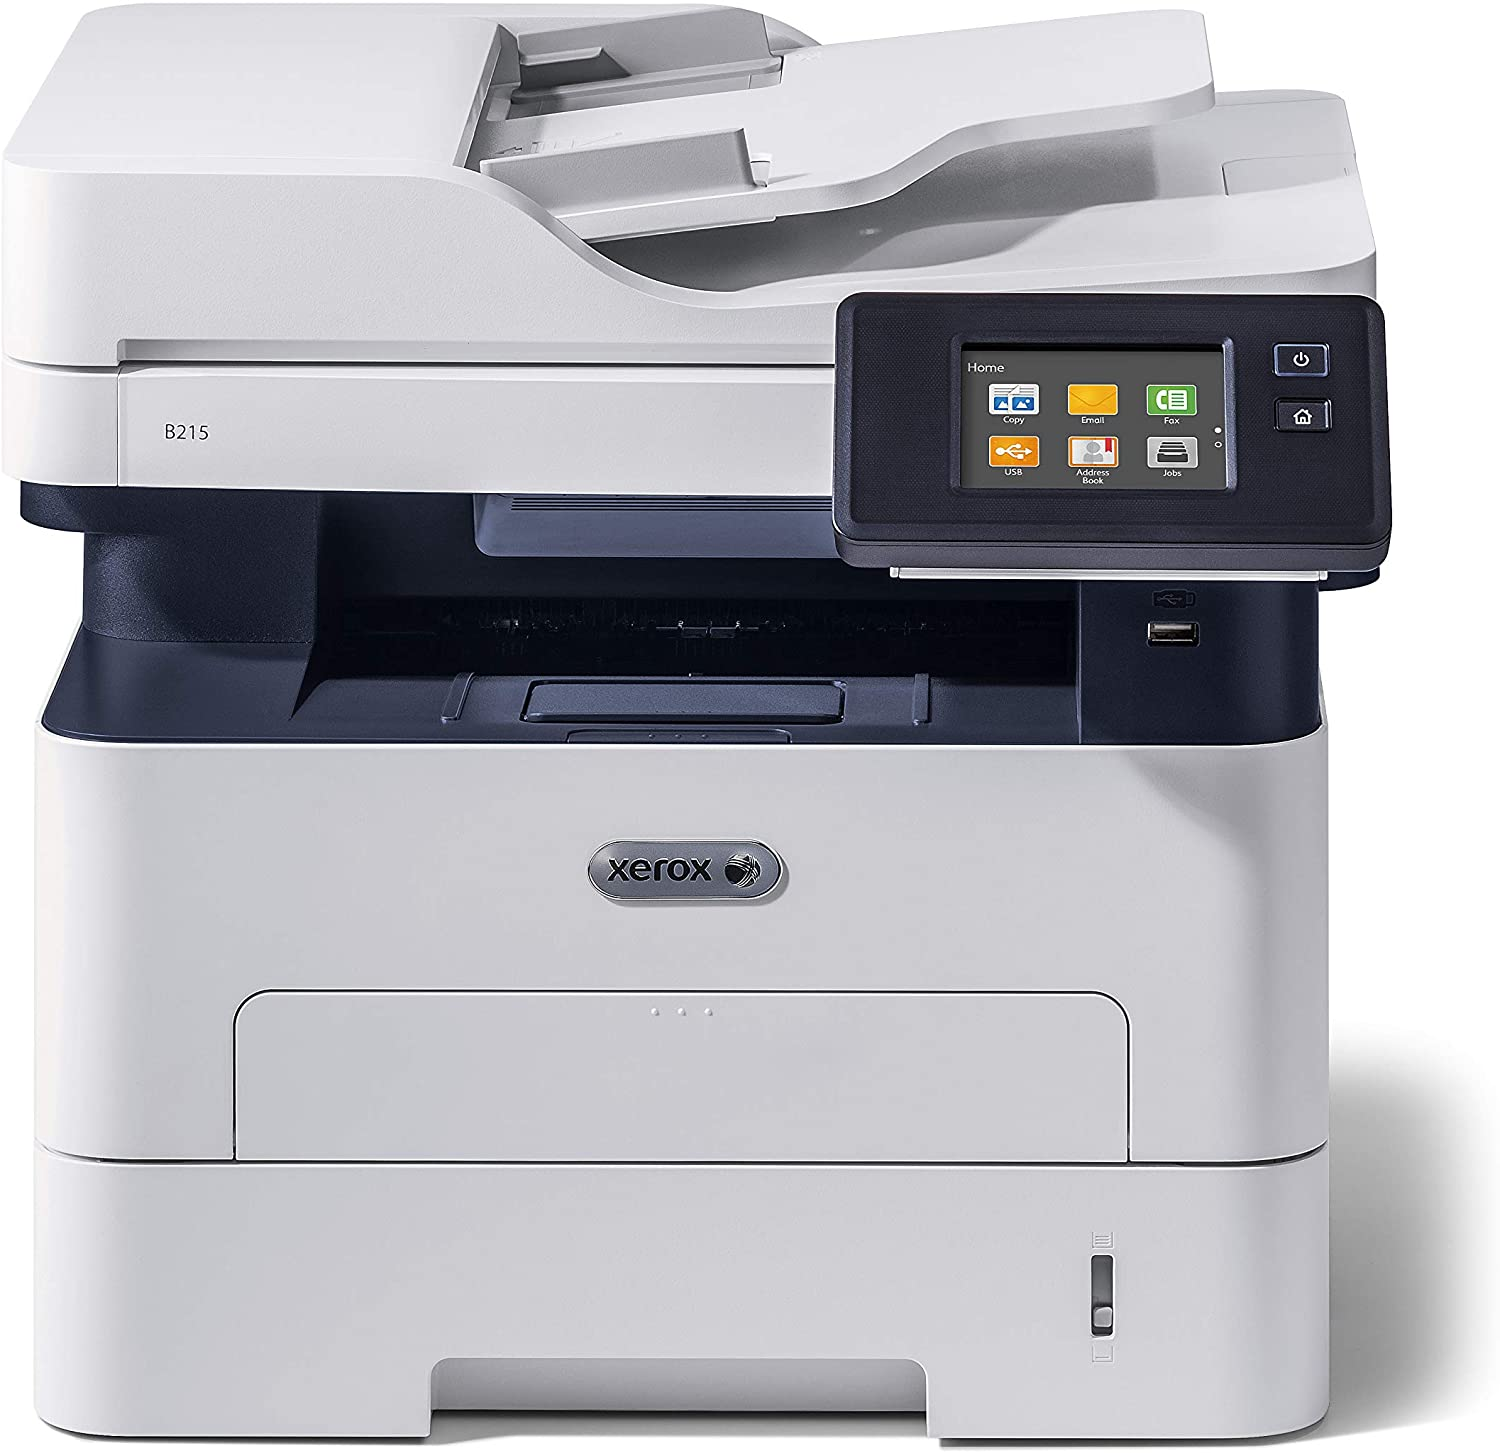 Xerox B215V_DNI A4 30ppm Black and White (Mono) Wireless Laser Multifunction Printer with Duplex 2-sided printing uk reviews